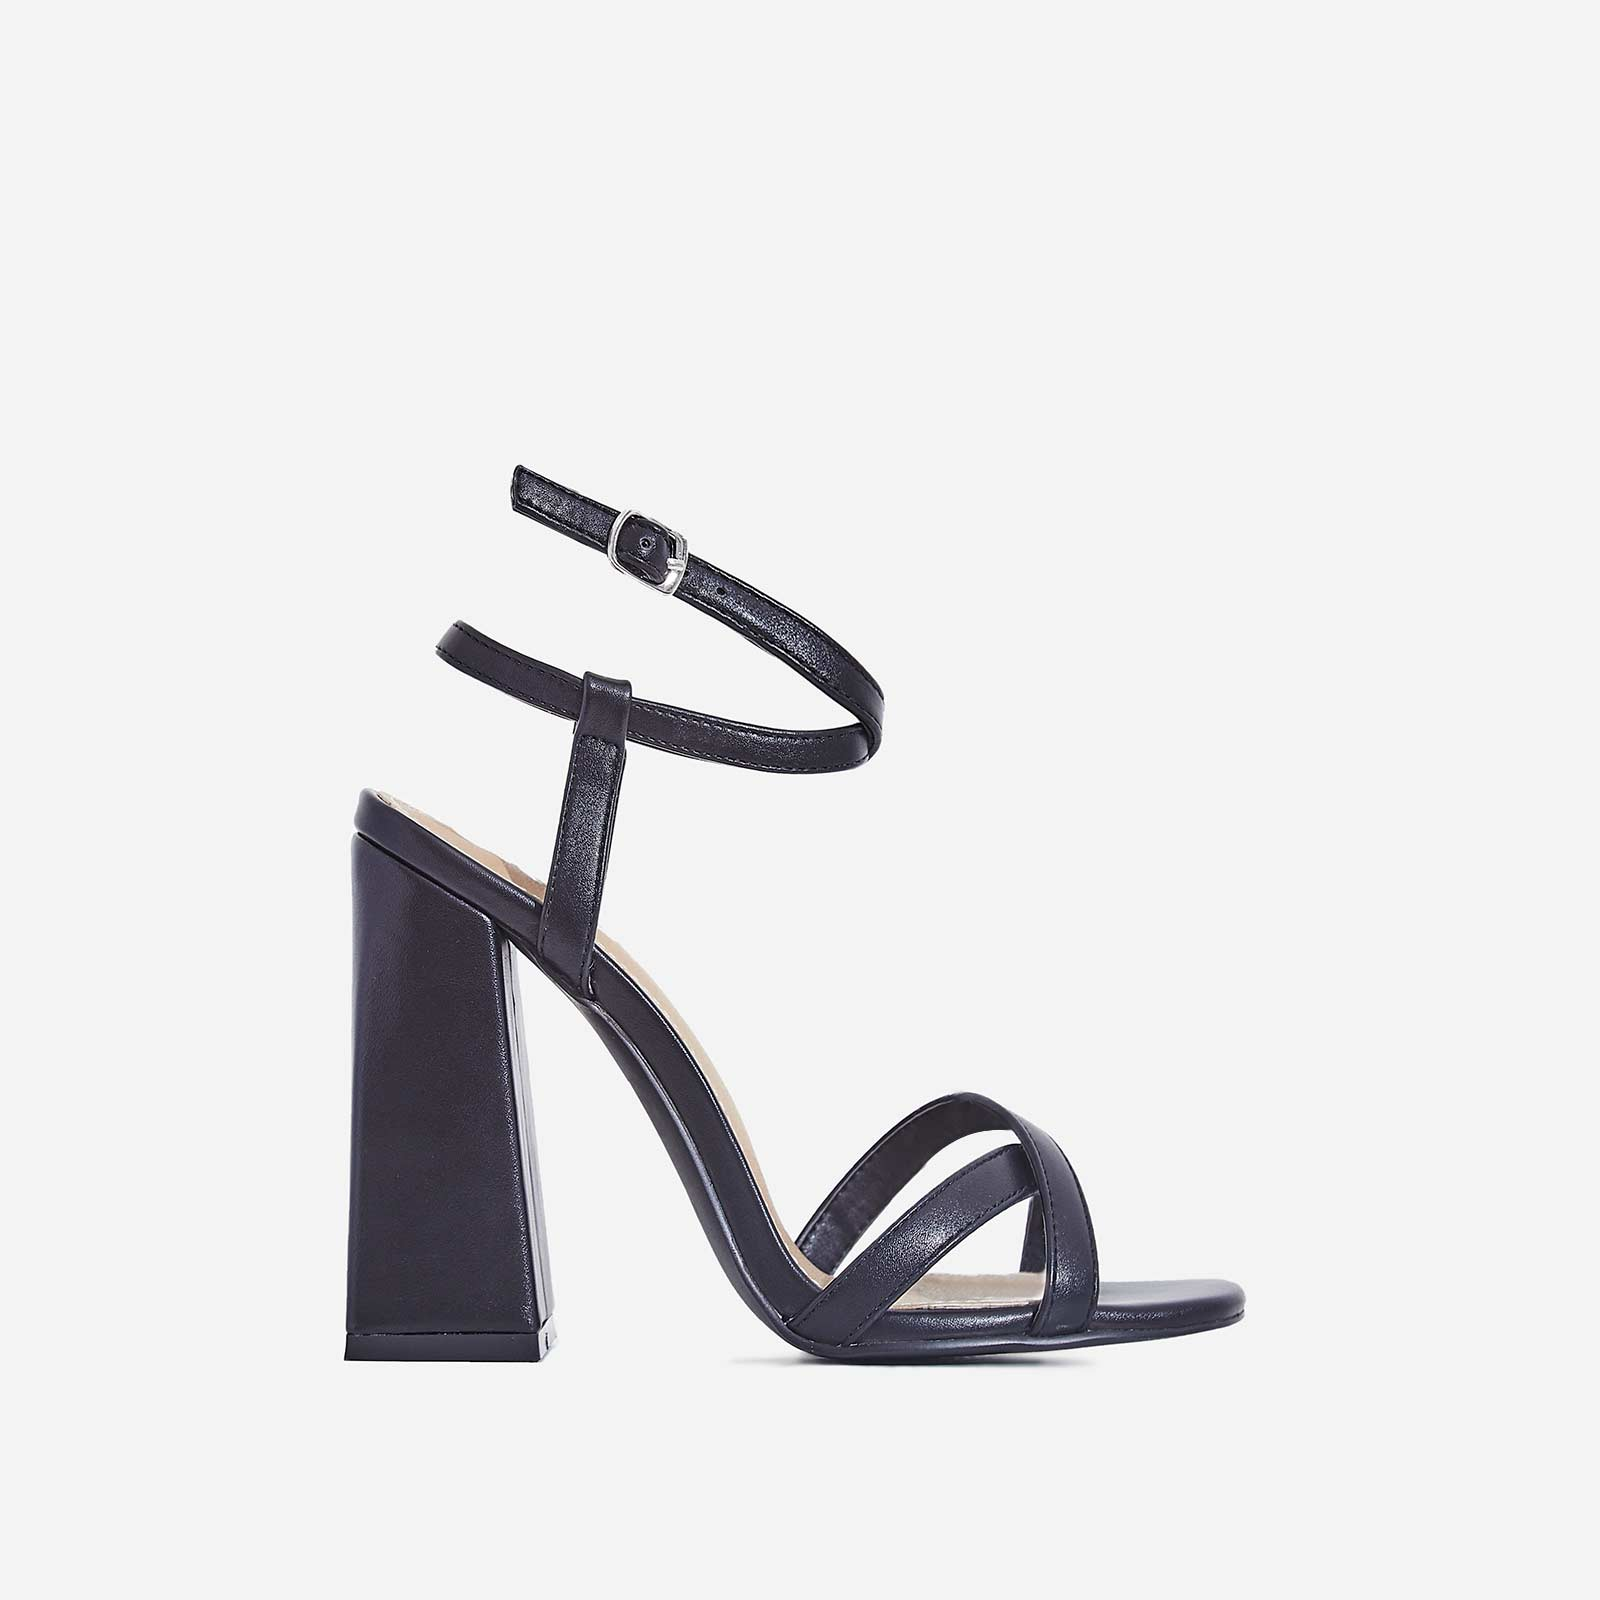 Iris Flared Block Heel In Black Faux Leather